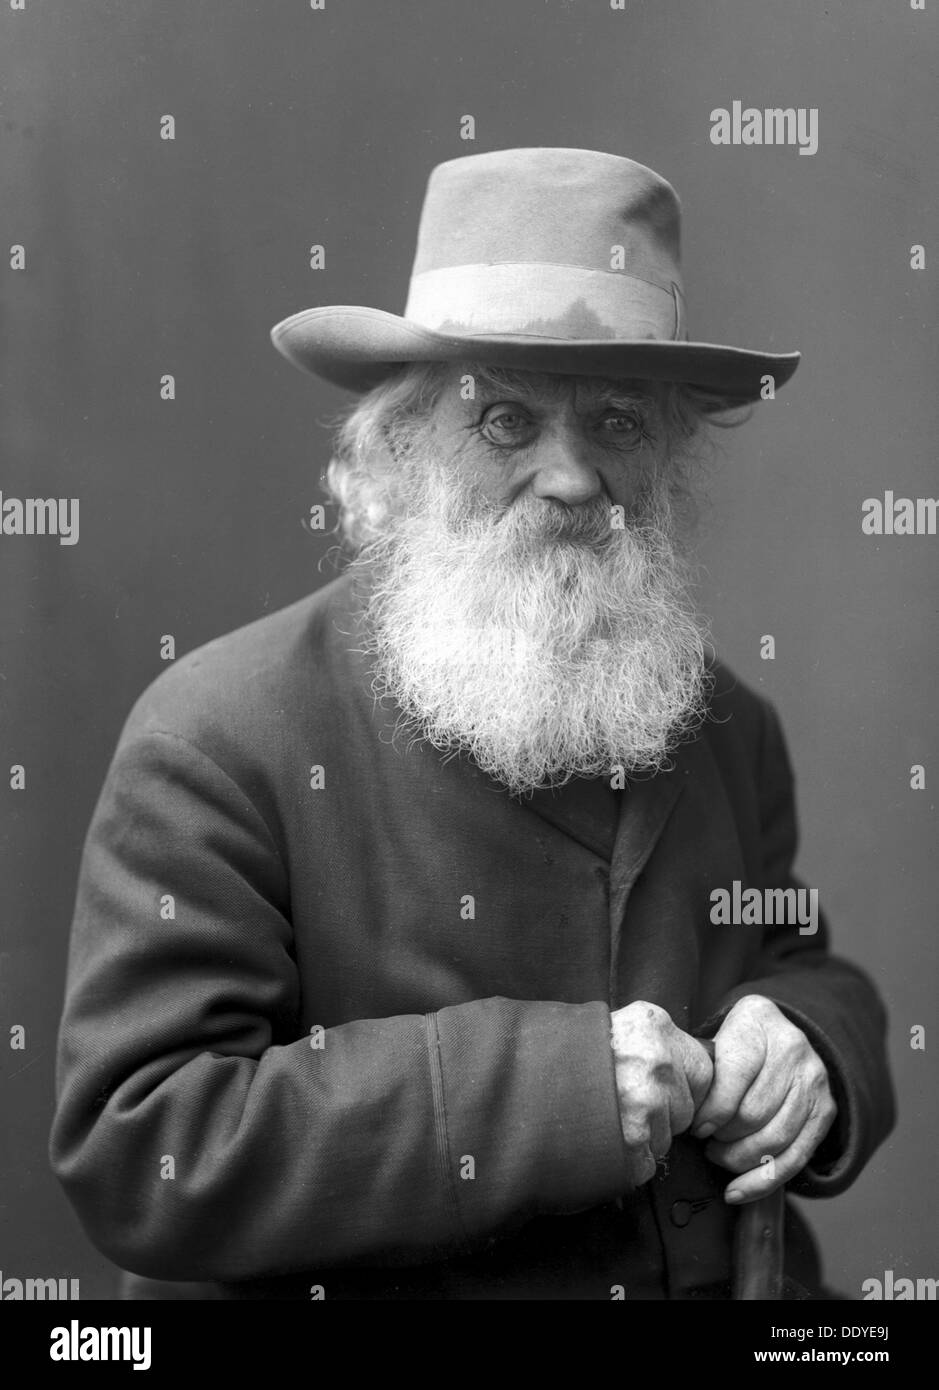 A bearded old man wearing a hat, Landskrona, Sweden, 1910. From Landskrona Museum Collection. - Stock Image